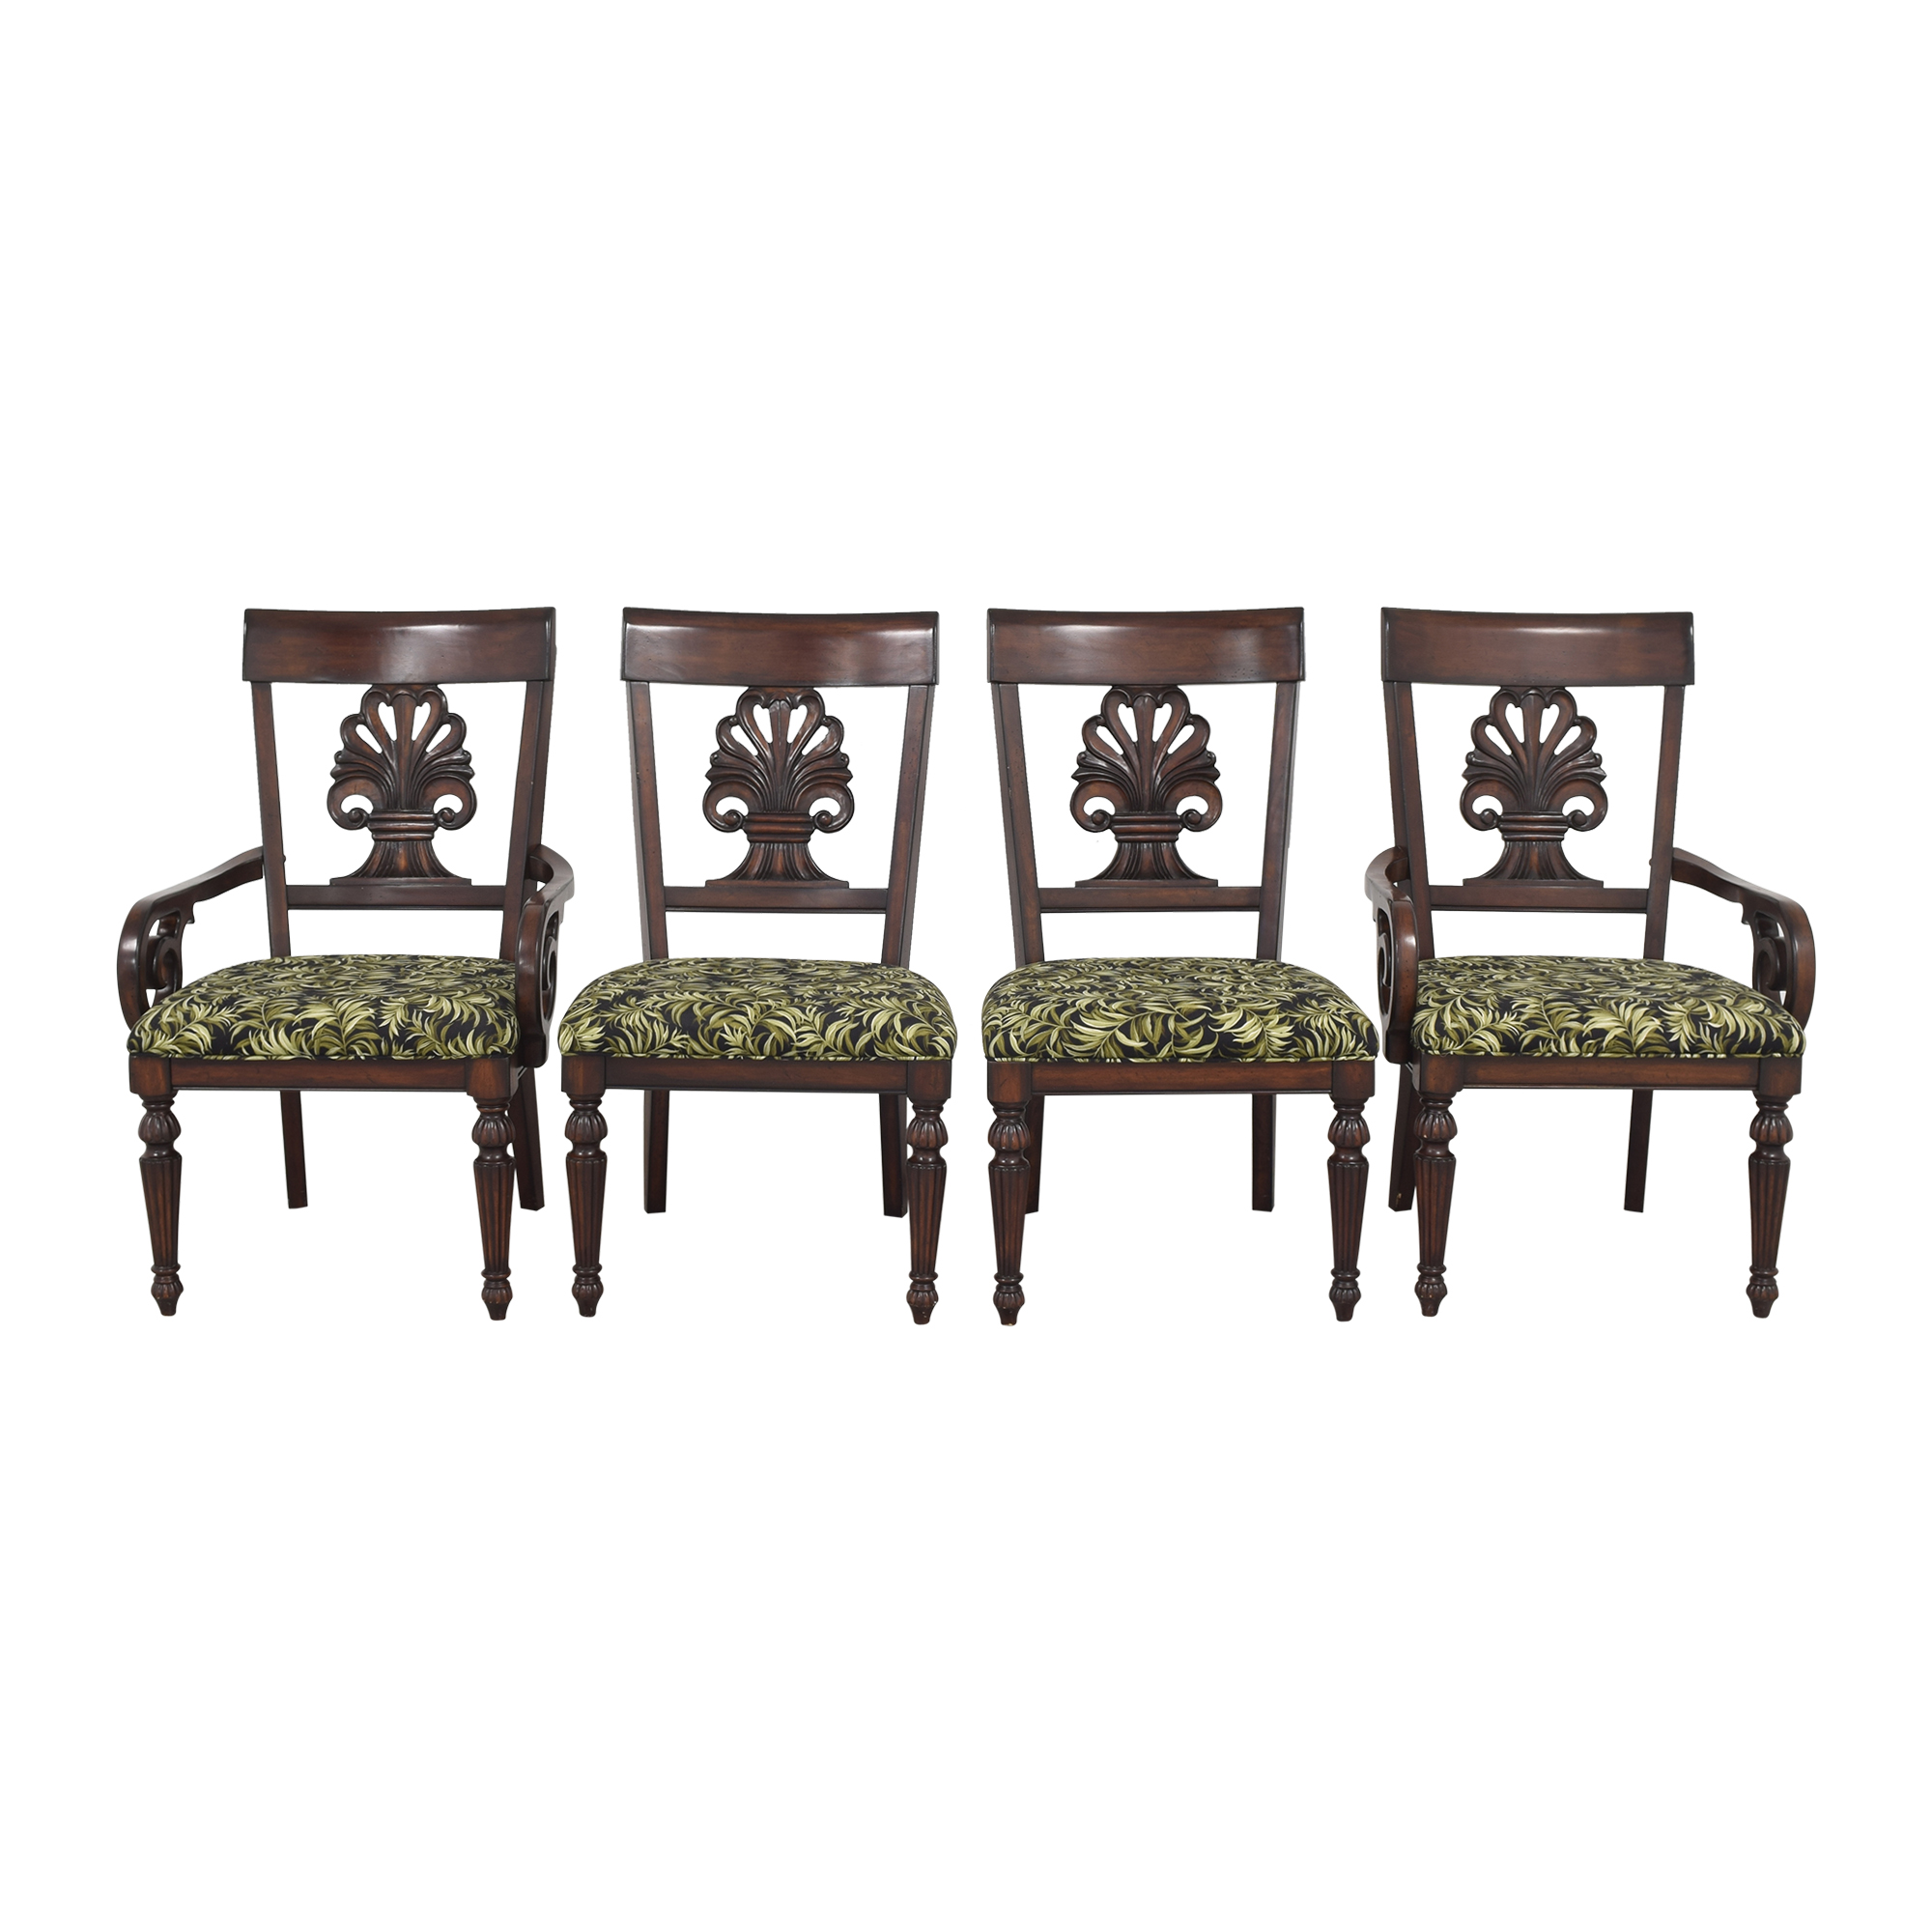 buy Tommy Bahama Dining Chairs Tommy Bahama Home Chairs